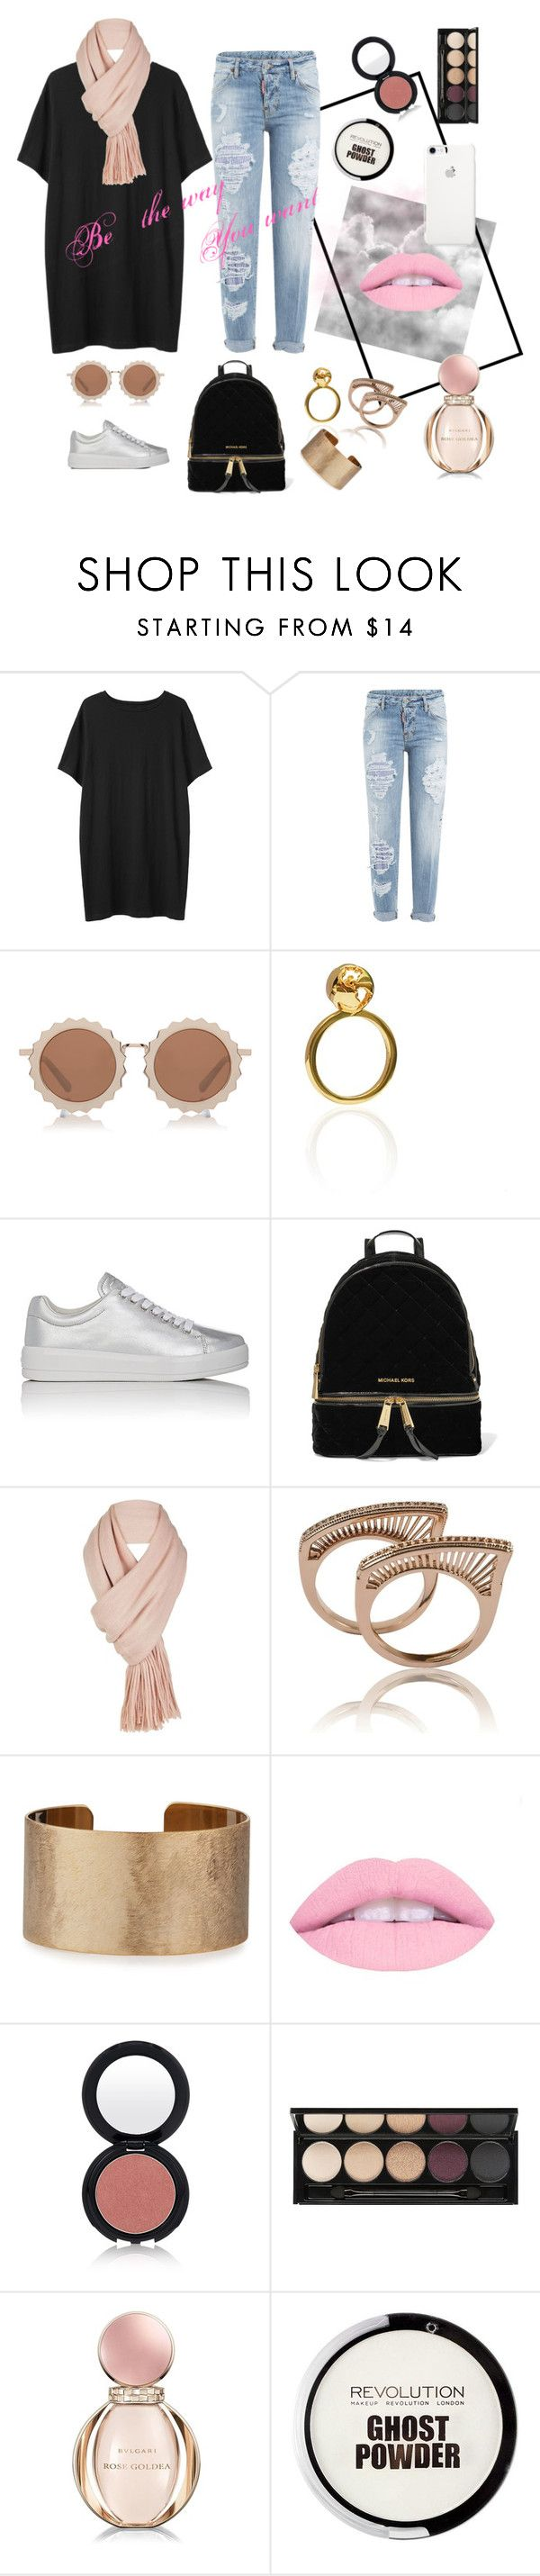 """""""Casual simple and sweet"""" by syahamzah ❤ liked on Polyvore featuring Organic by John Patrick, Dsquared2, House of Holland, Prada Sport, MICHAEL Michael Kors, Free People, Panacea, Glo Minerals, Witchery and Bulgari"""